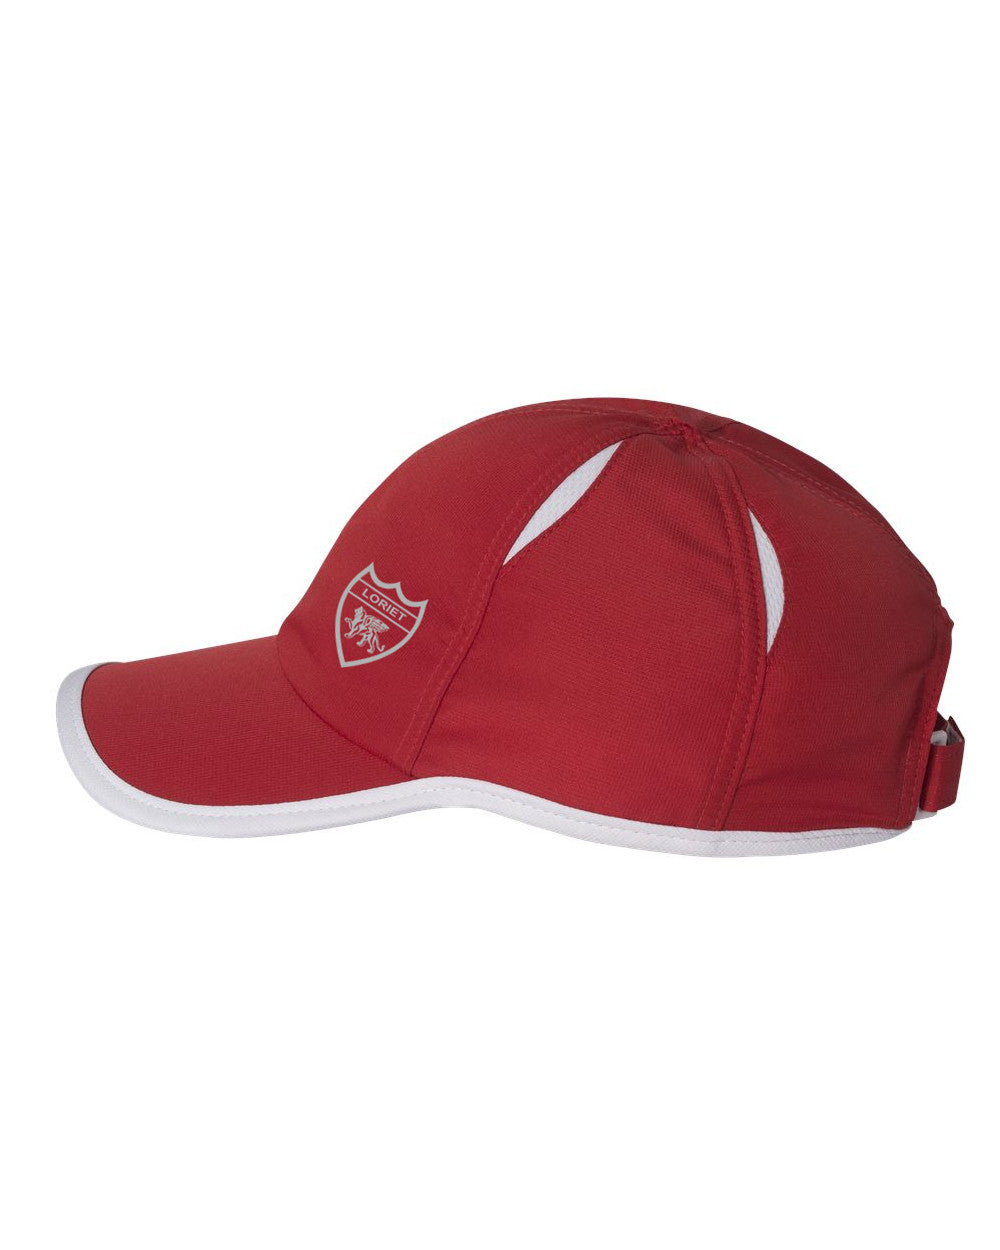 Duo Performance Cap - Loriet Activewear